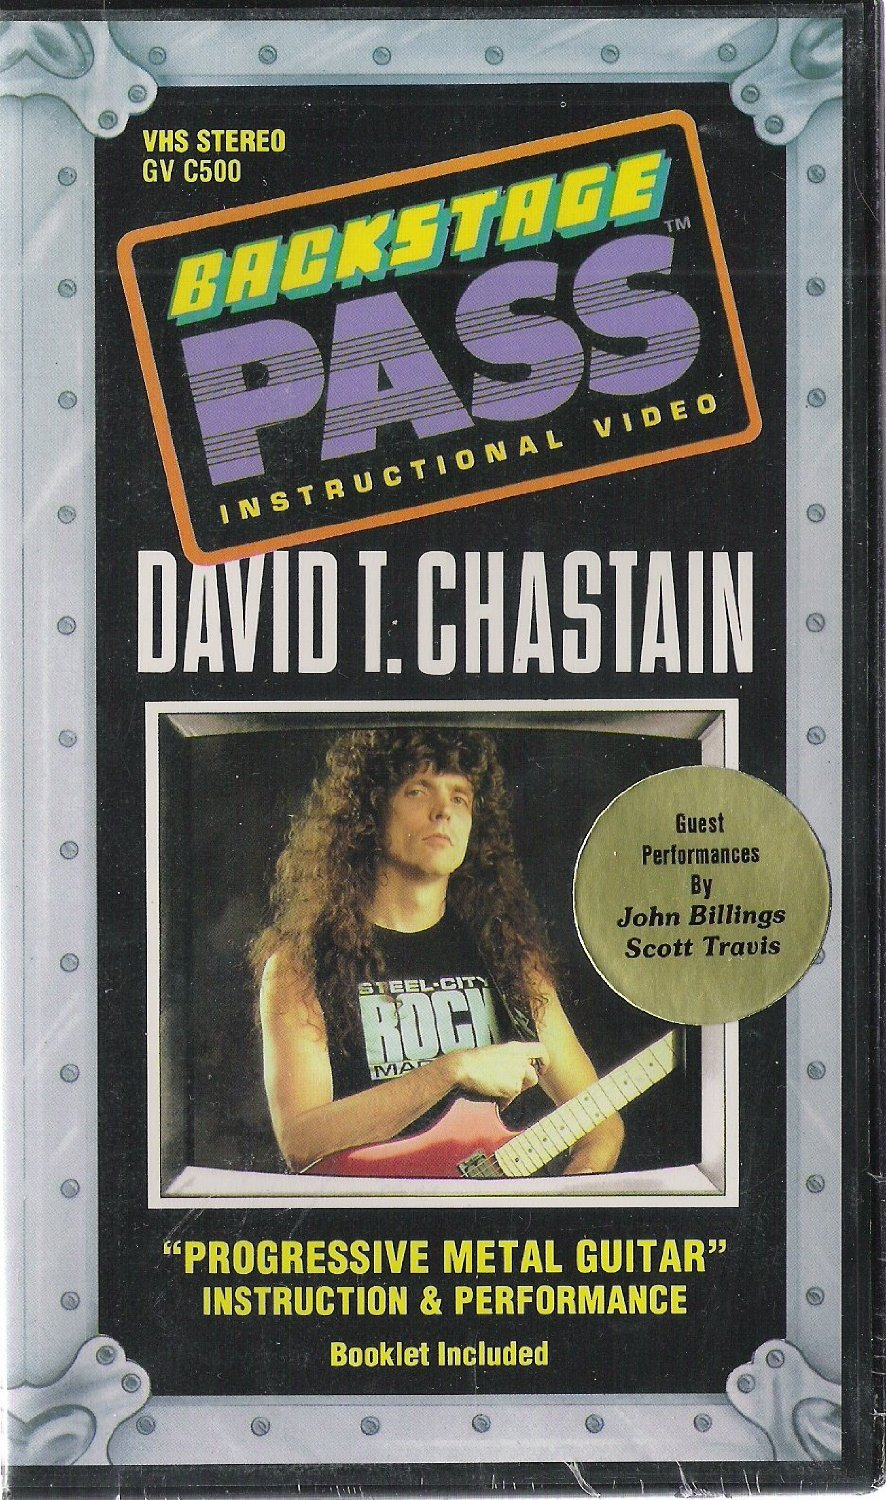 David Chastain - Progressive Metal Guitar (1990)